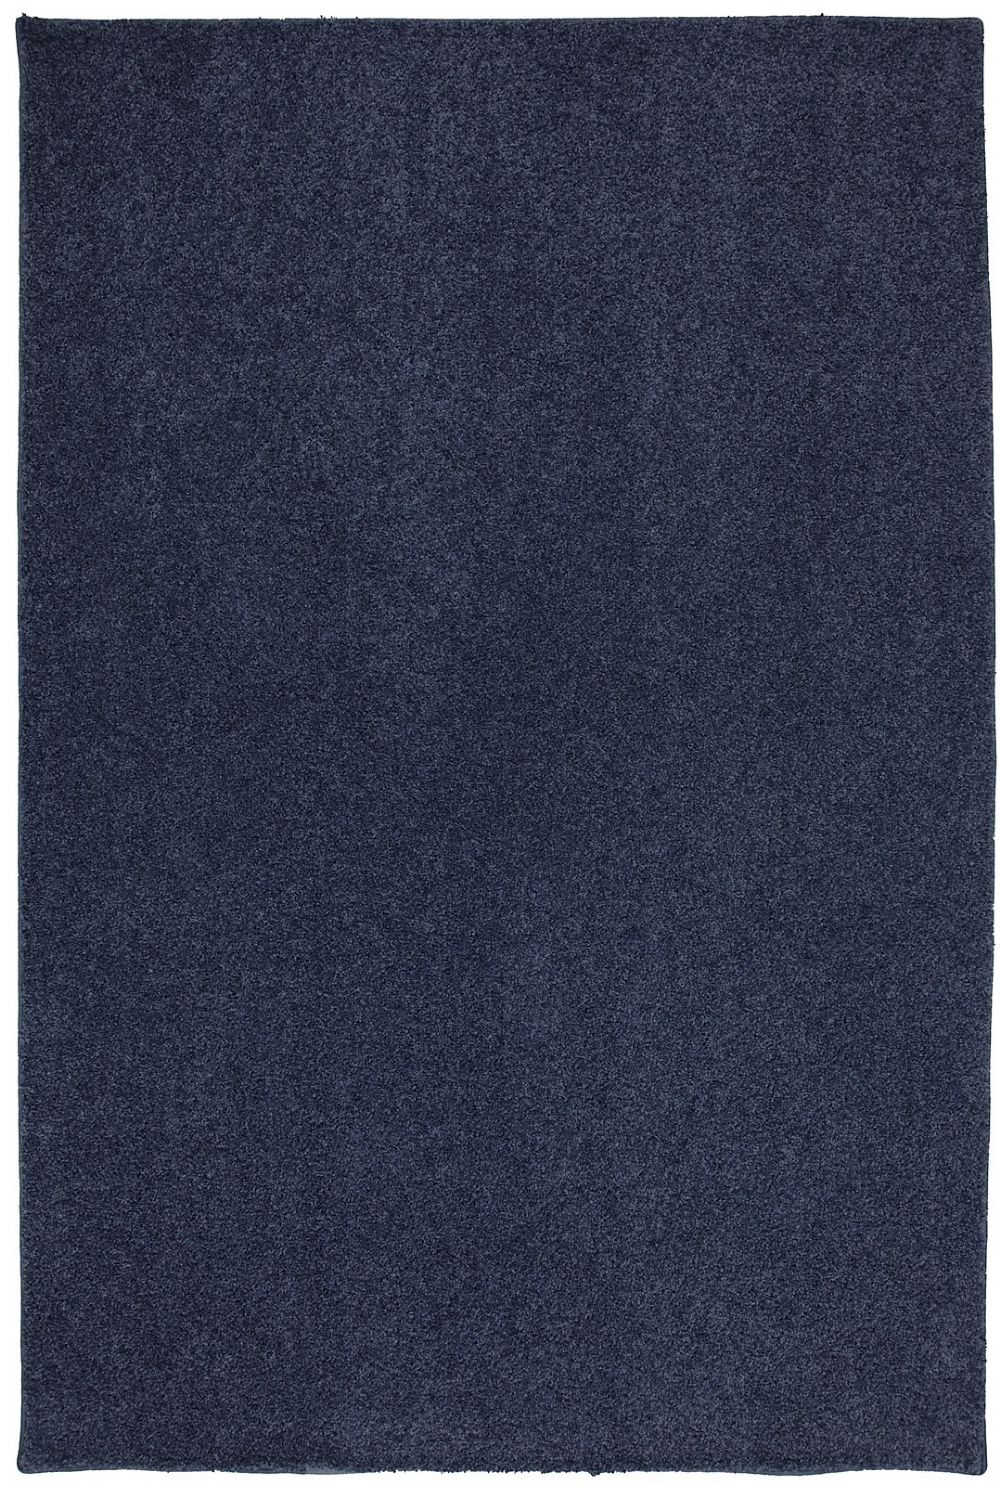 mohawk smart strand satin contemporary area rug collection